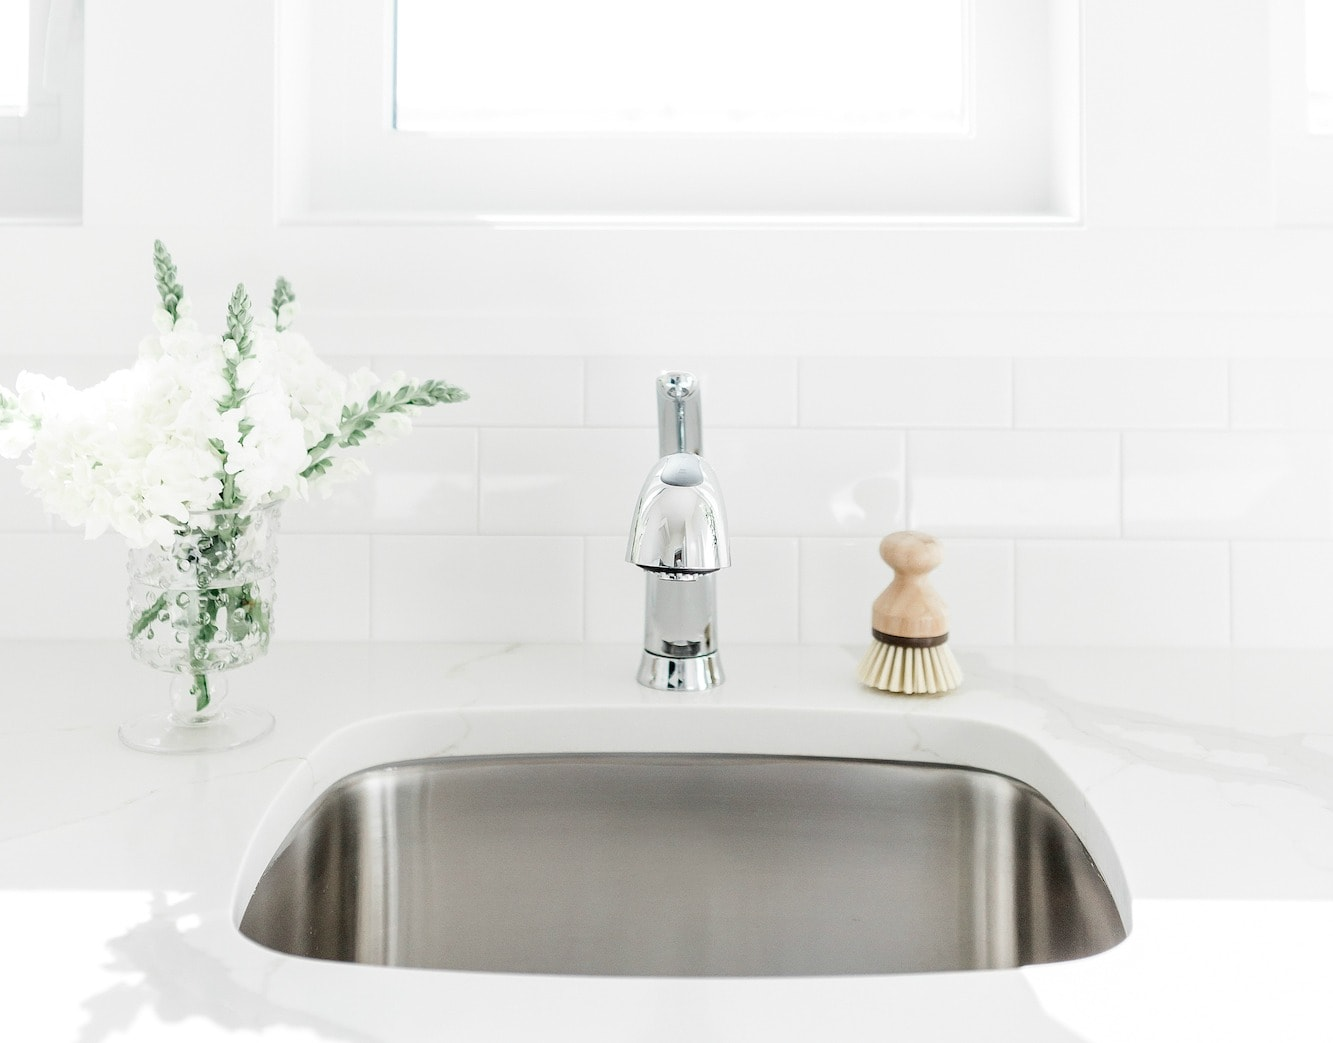 How to Naturally Kill Germs in a Kitchen Sink - Get Green ...